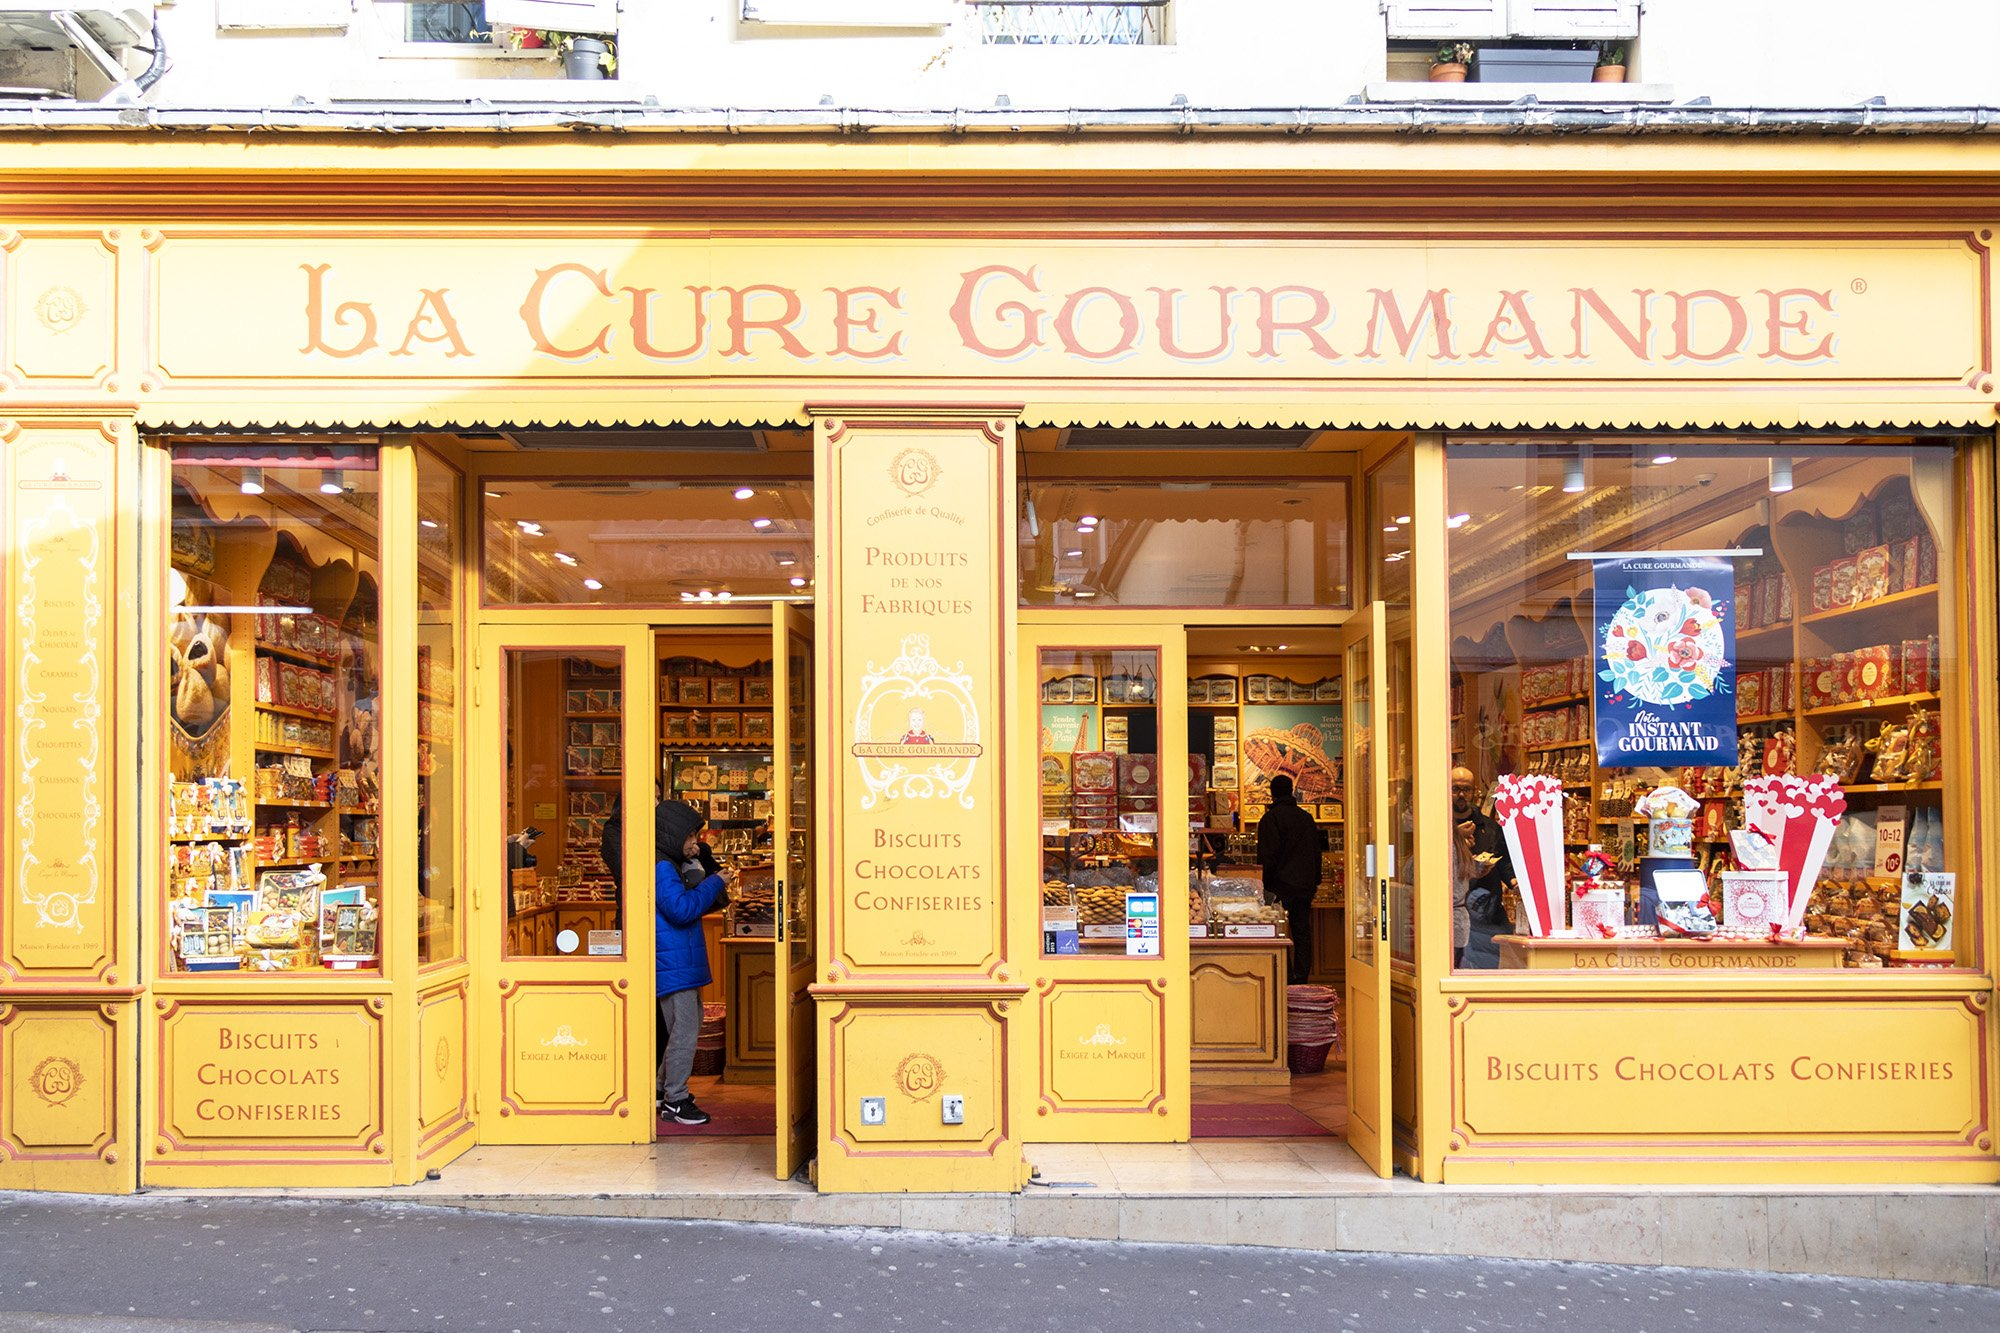 La Cure Gourmande, Paris